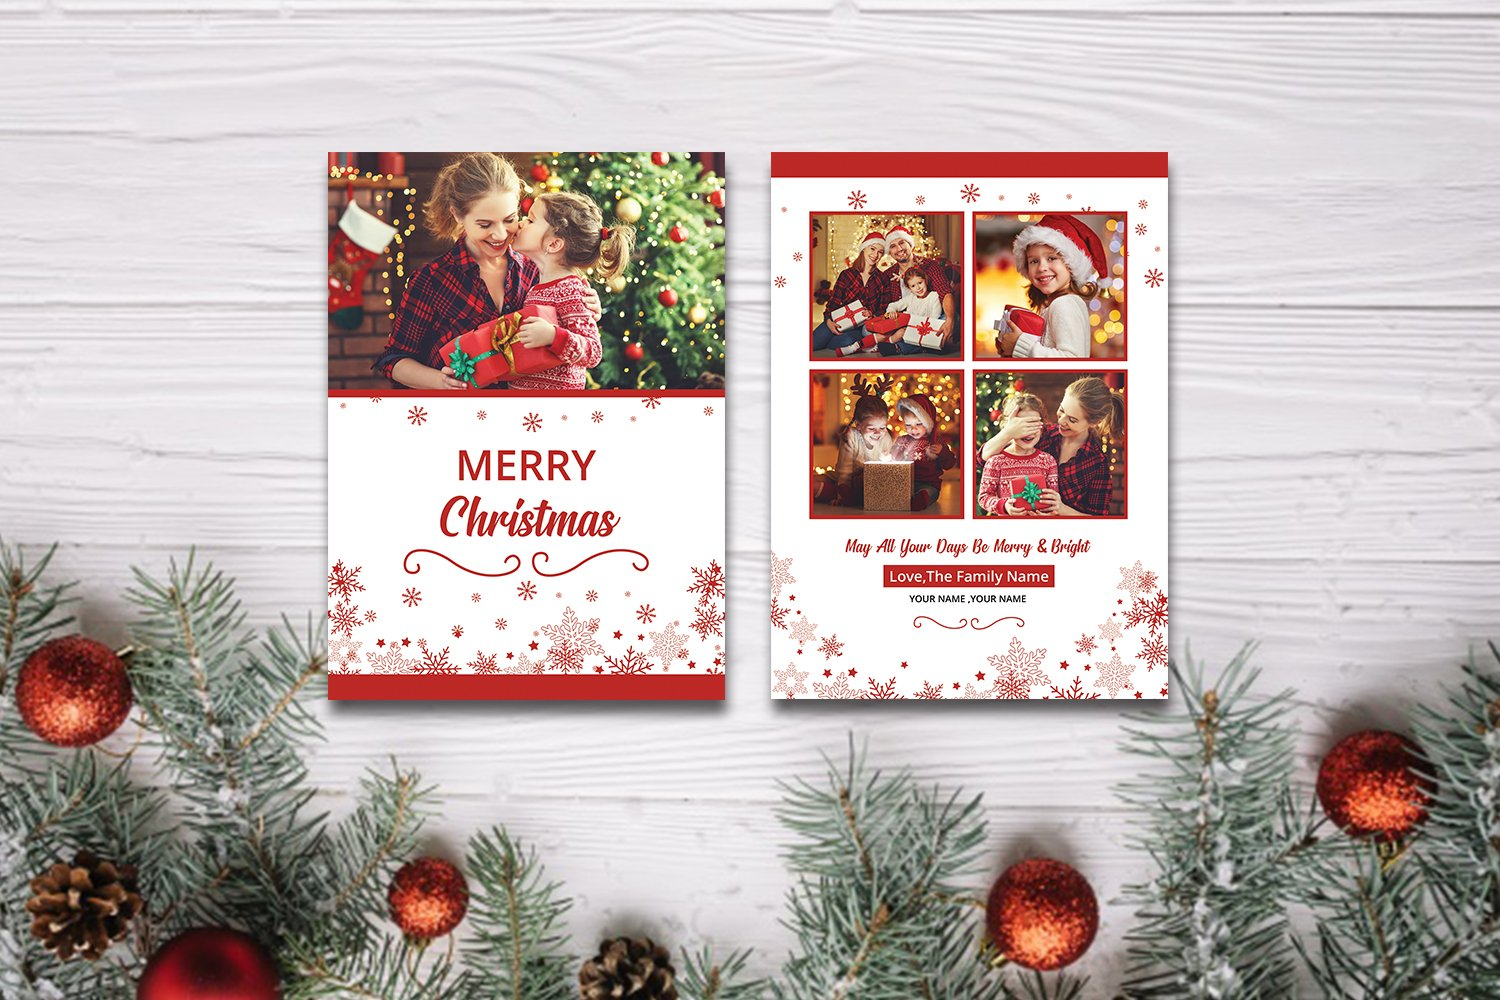 Christmas Photo Greeting Card Corporate Identity Template